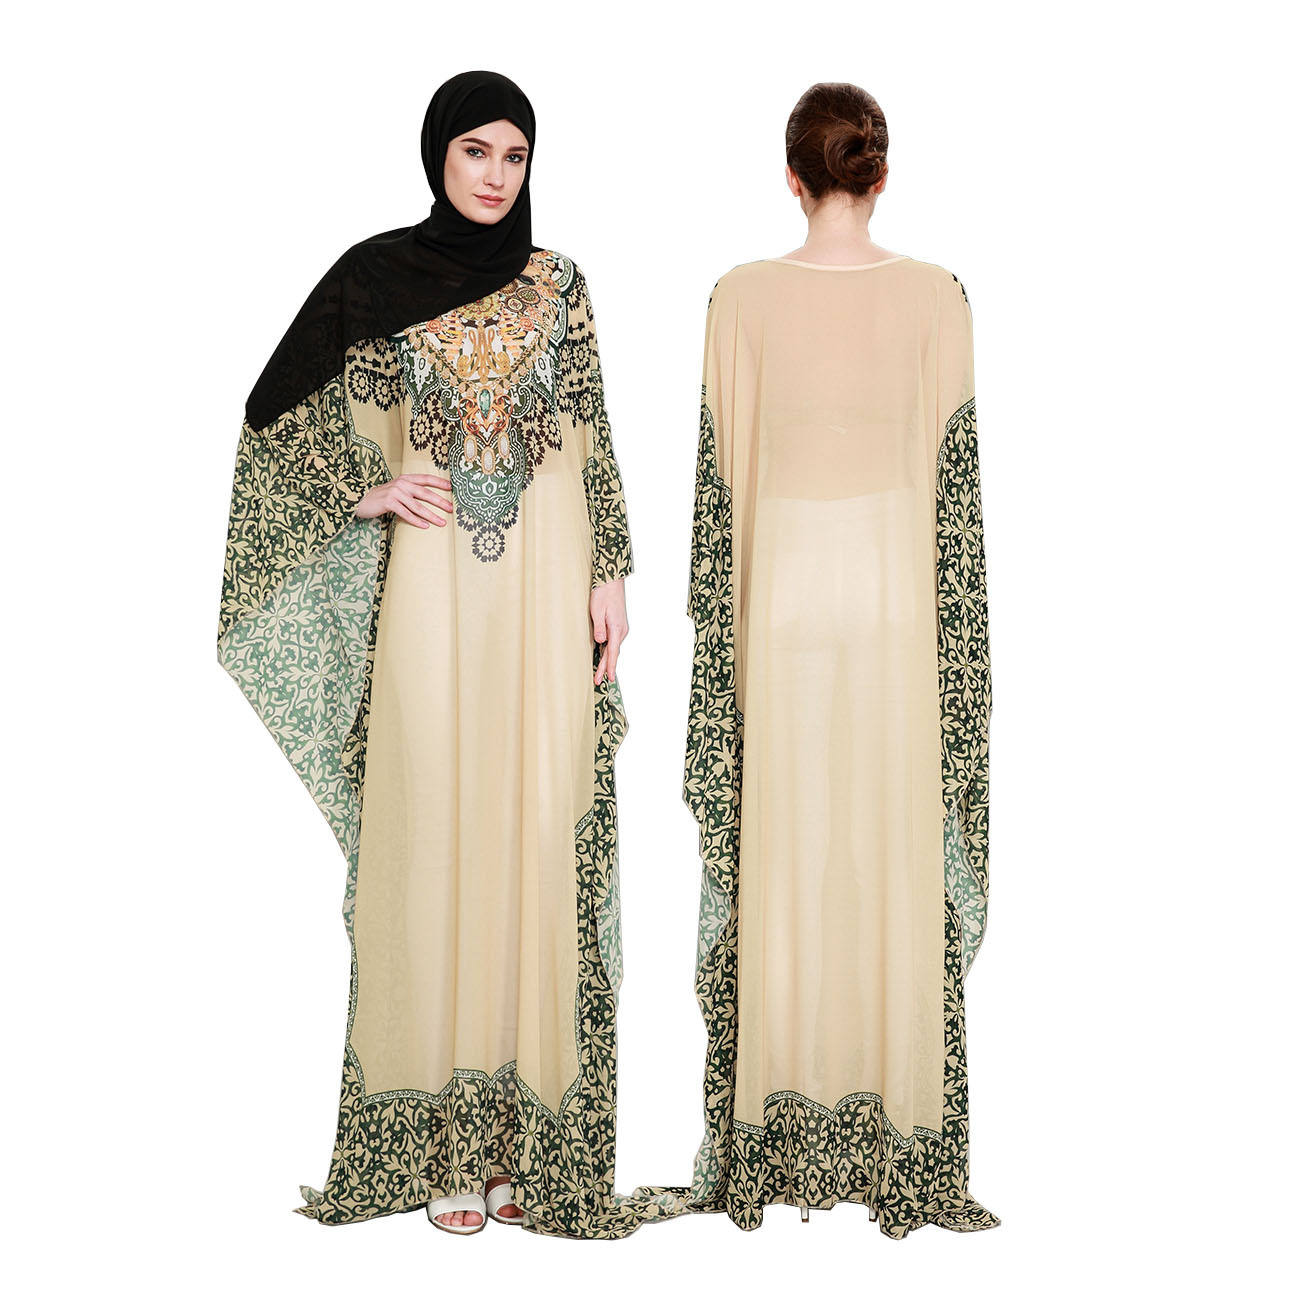 Arab Turkish Jilbab Dubai Long Muslim Women Islamic Dresses Plain Latest Designs Pray Abaya